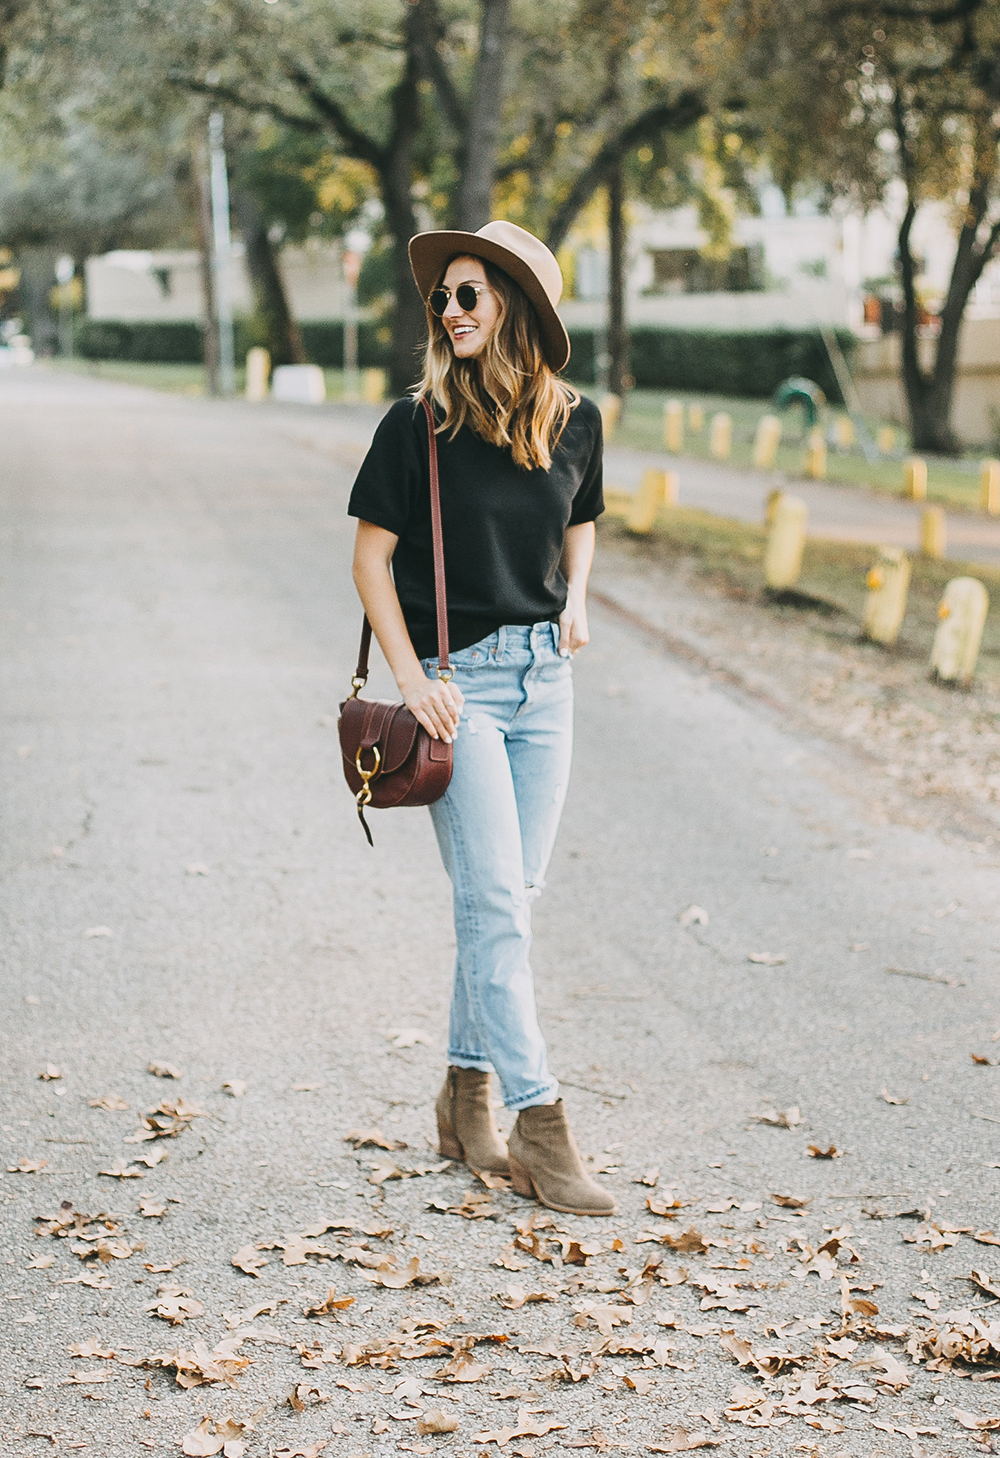 livvyland-blog-olivia-watson-levis-501-jeans-taupe-suede-ankle-booties-fall-outfit-3